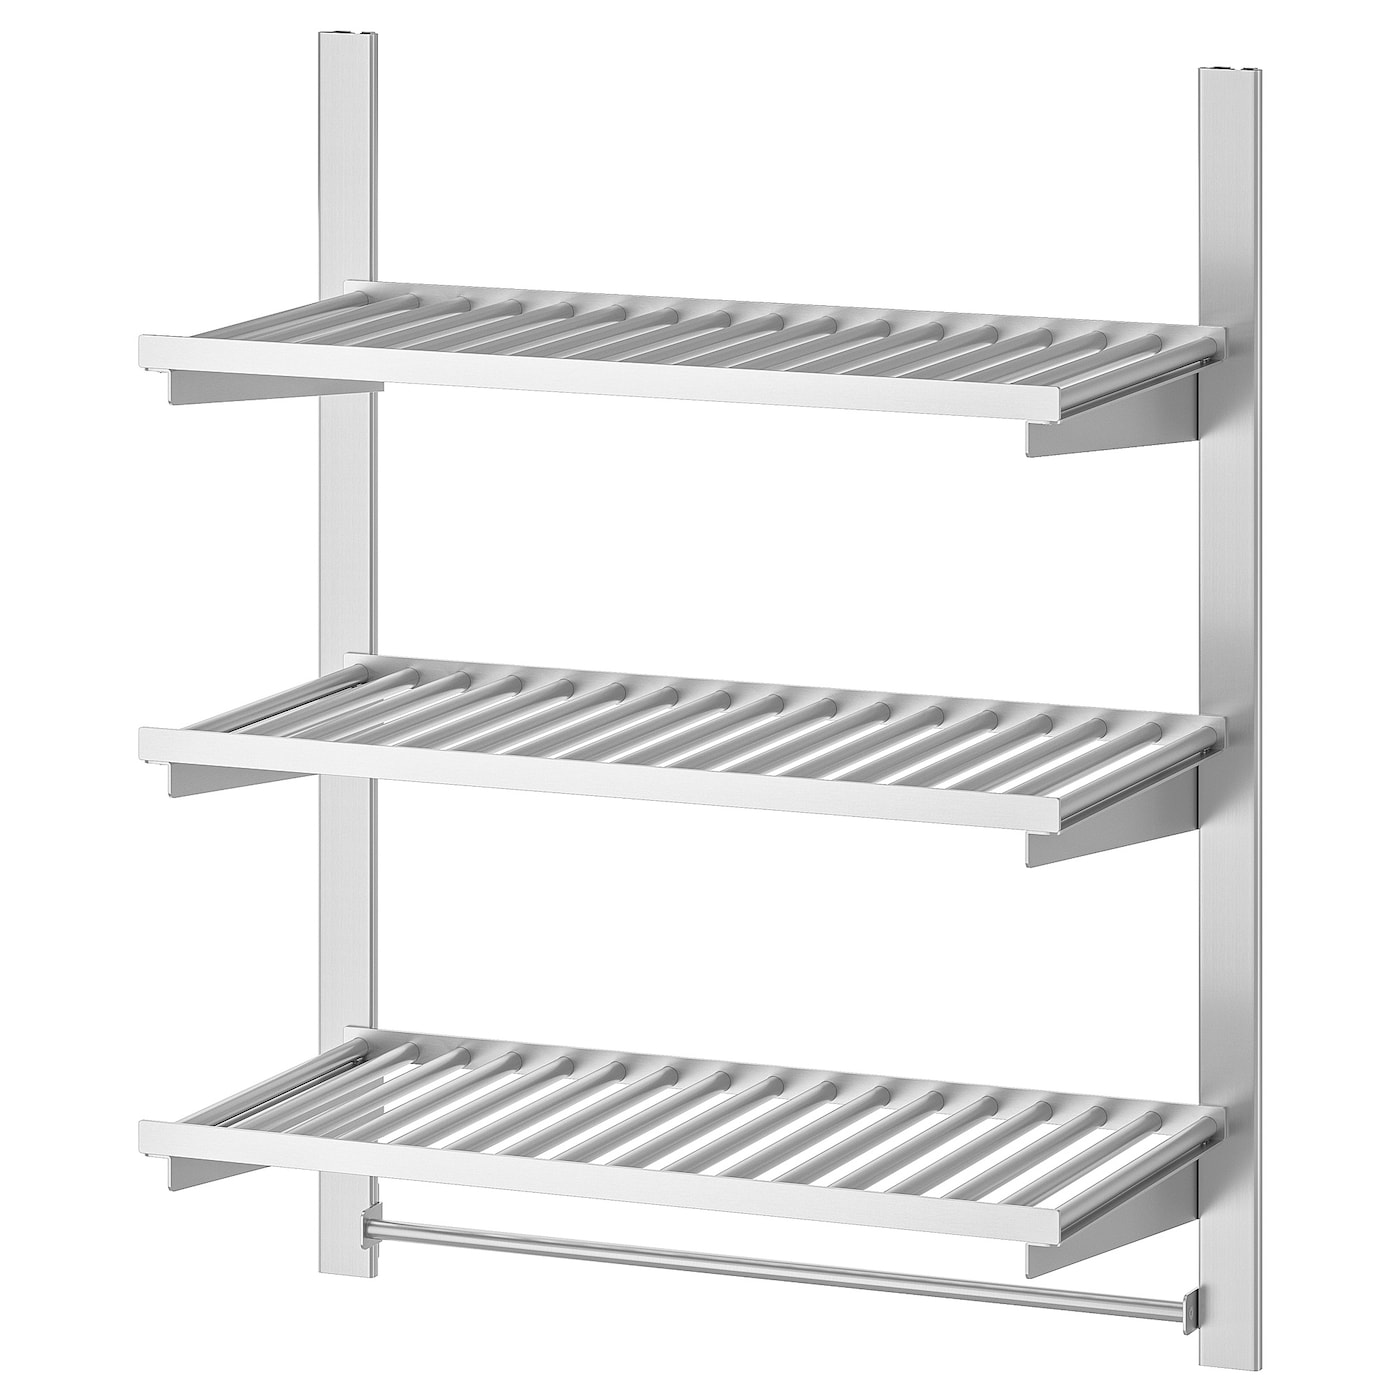 IKEA KUNGSFORS suspension rail w shelves and rail Gives you extra storage in your kitchen.